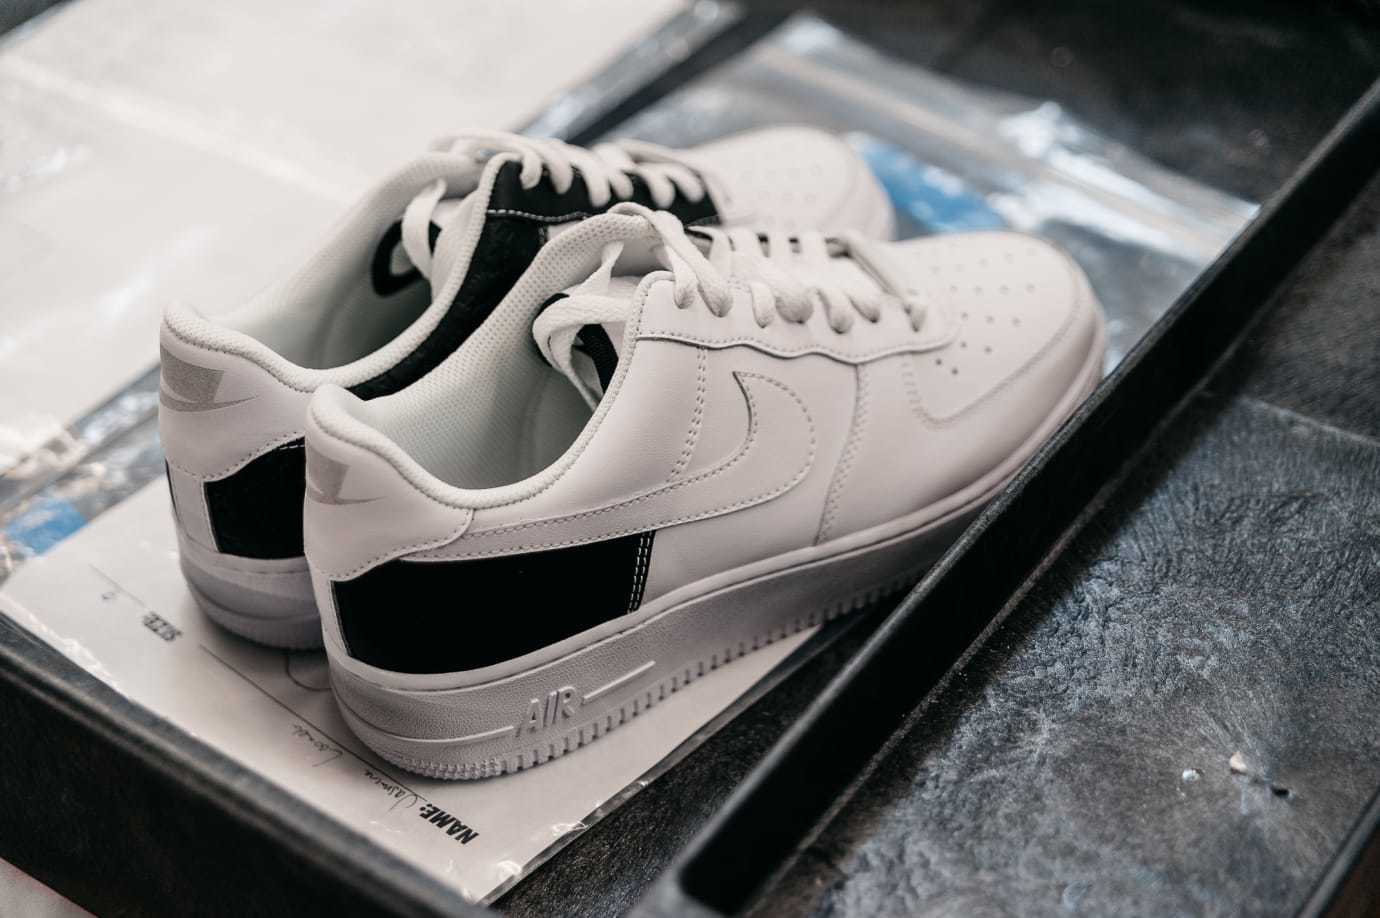 Nike Flyleather Air Force 1 1